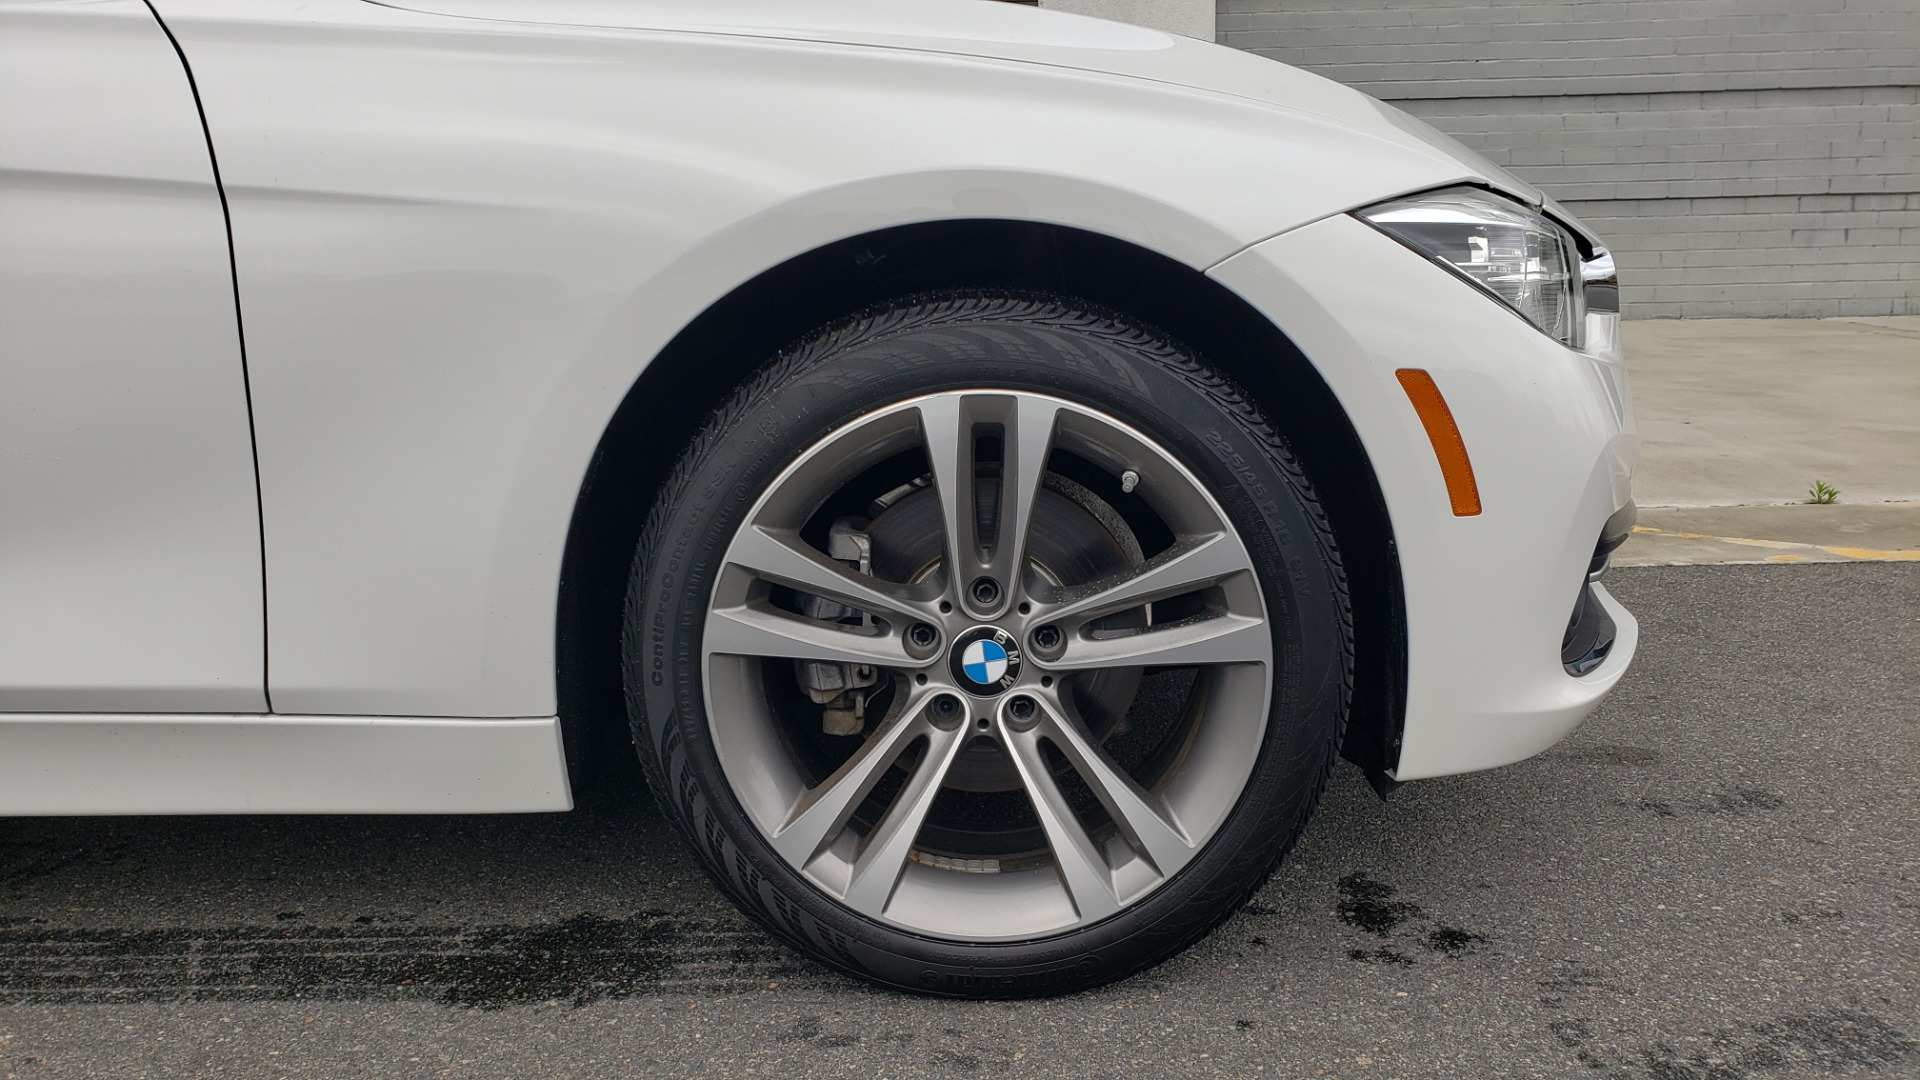 Used 2018 BMW 3 SERIES 330I XDRIVE / CONV PKG / SUNROOF / HTD STS / REARVIEW for sale $24,795 at Formula Imports in Charlotte NC 28227 83